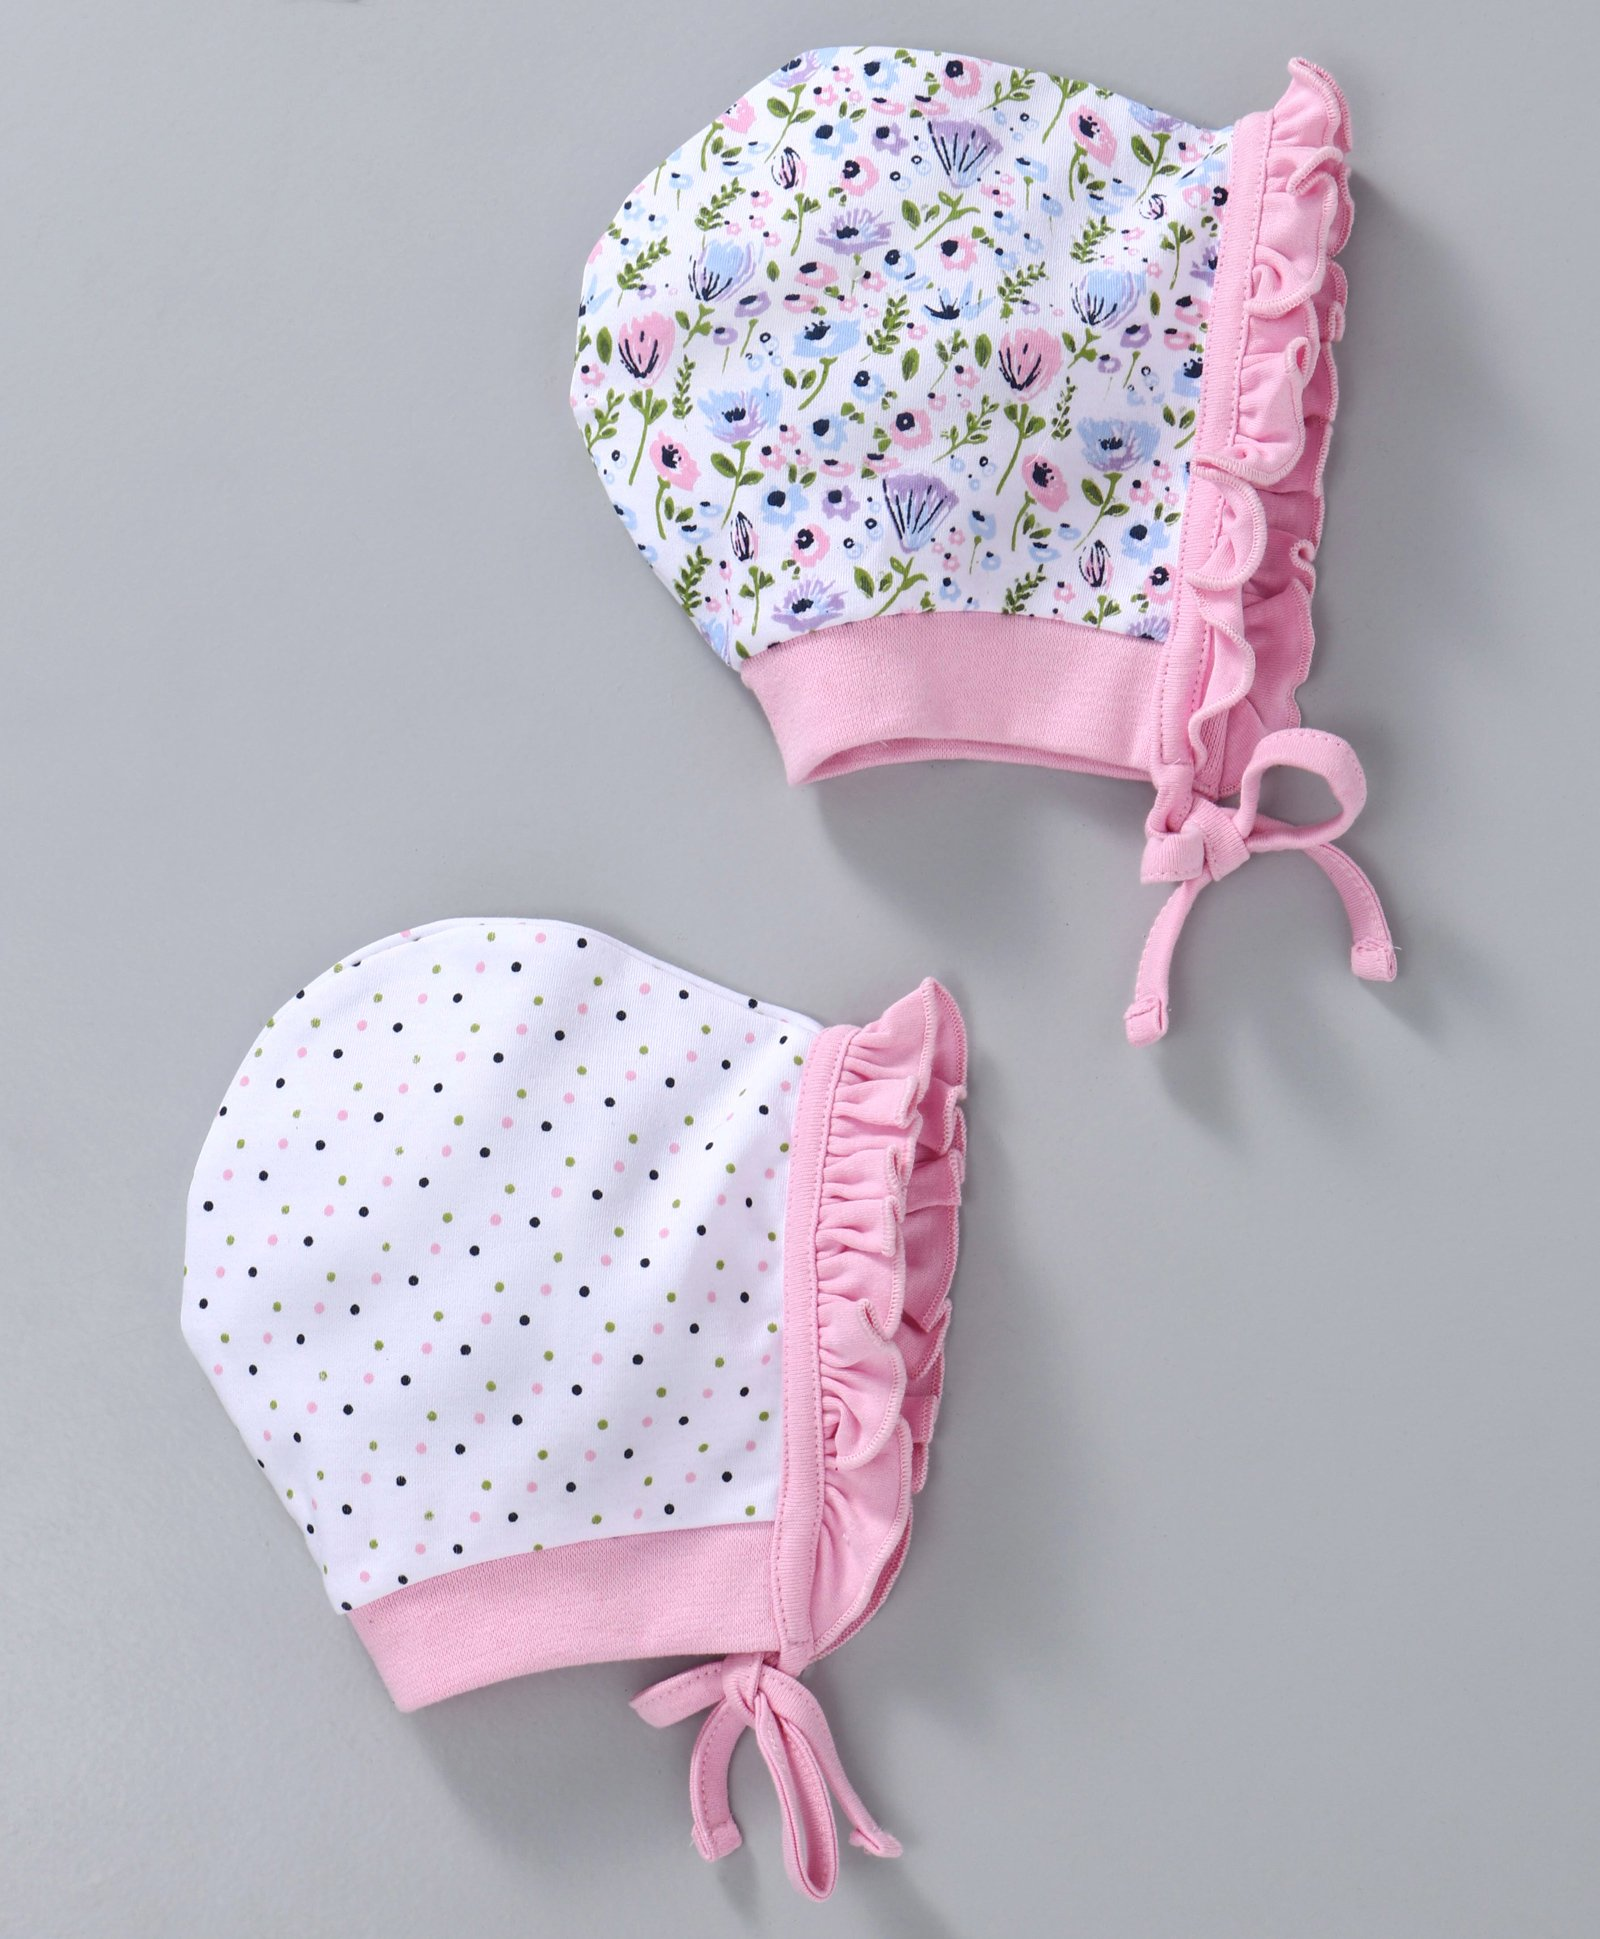 b86e9ba0263 Babyhug Cotton Bonnet Caps Dotted   Floral Print Pack of 2 - Light Pink